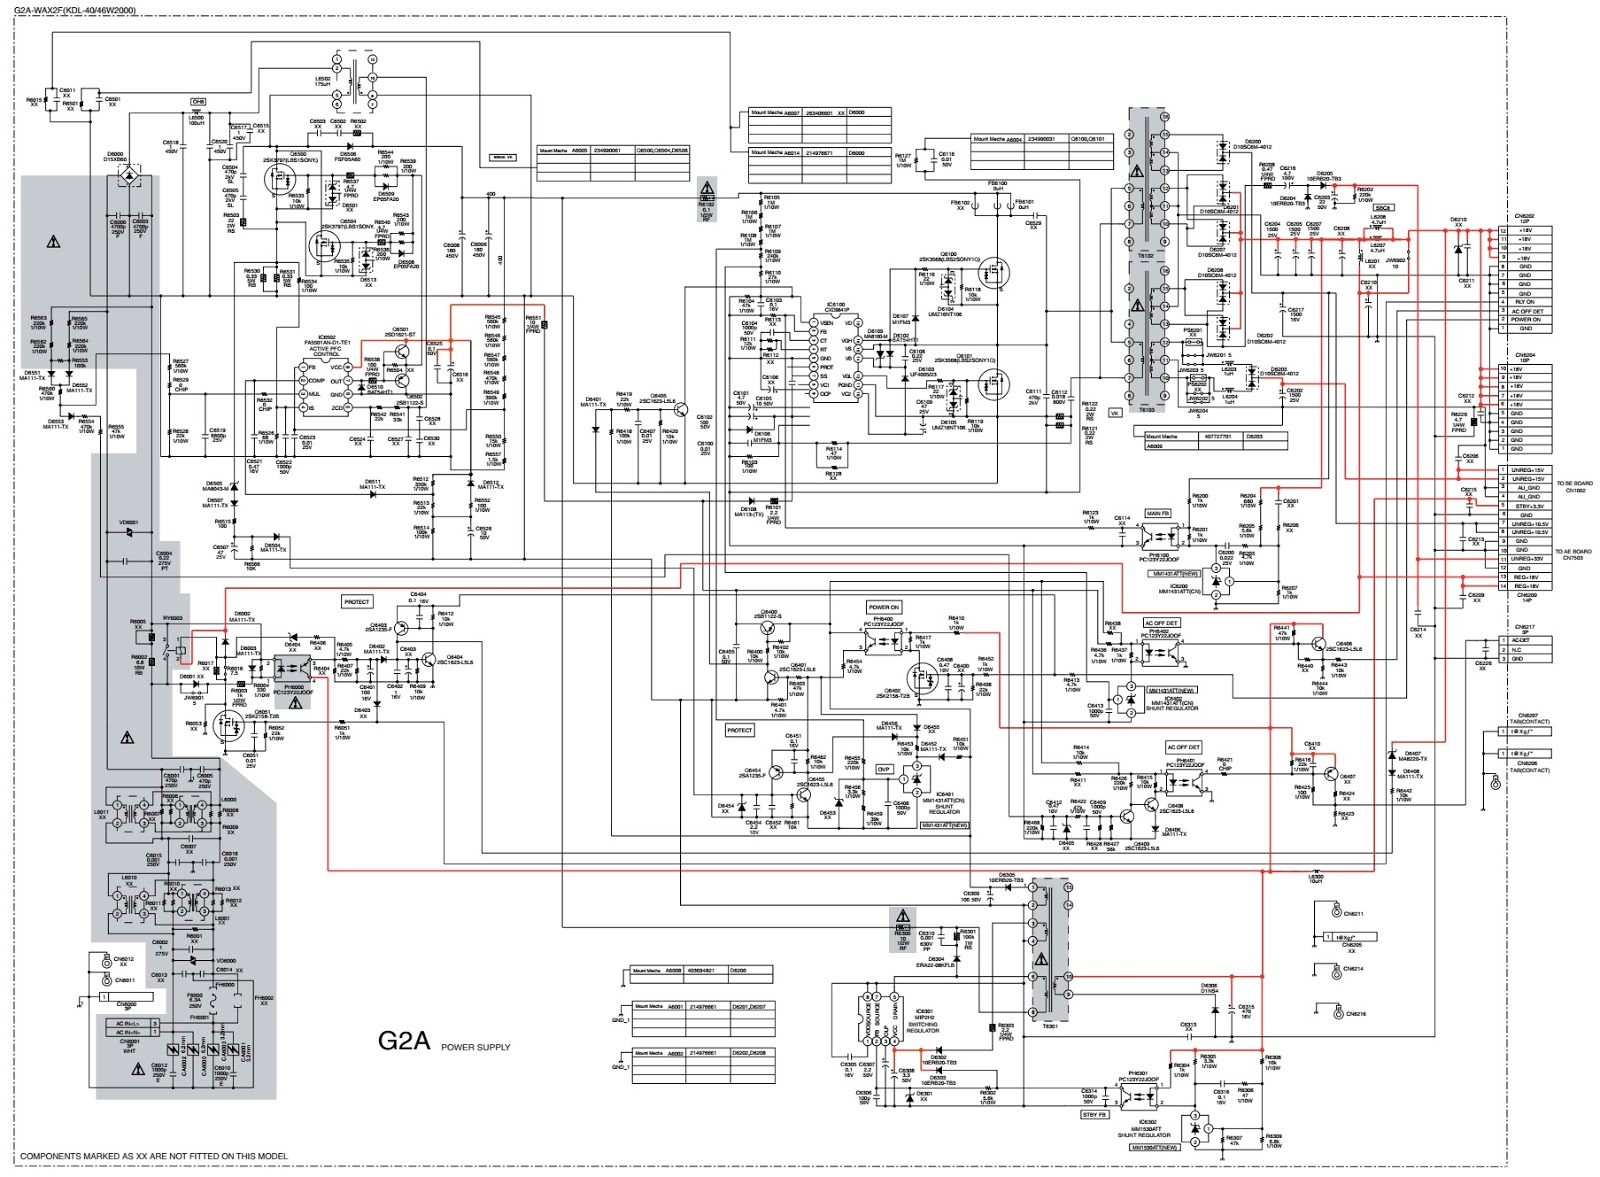 hight resolution of diagram sony led tv diagram full version hd quality tv diagram konka led lcd tv 32f3000c supra stv lcs26740 tv schematic power and